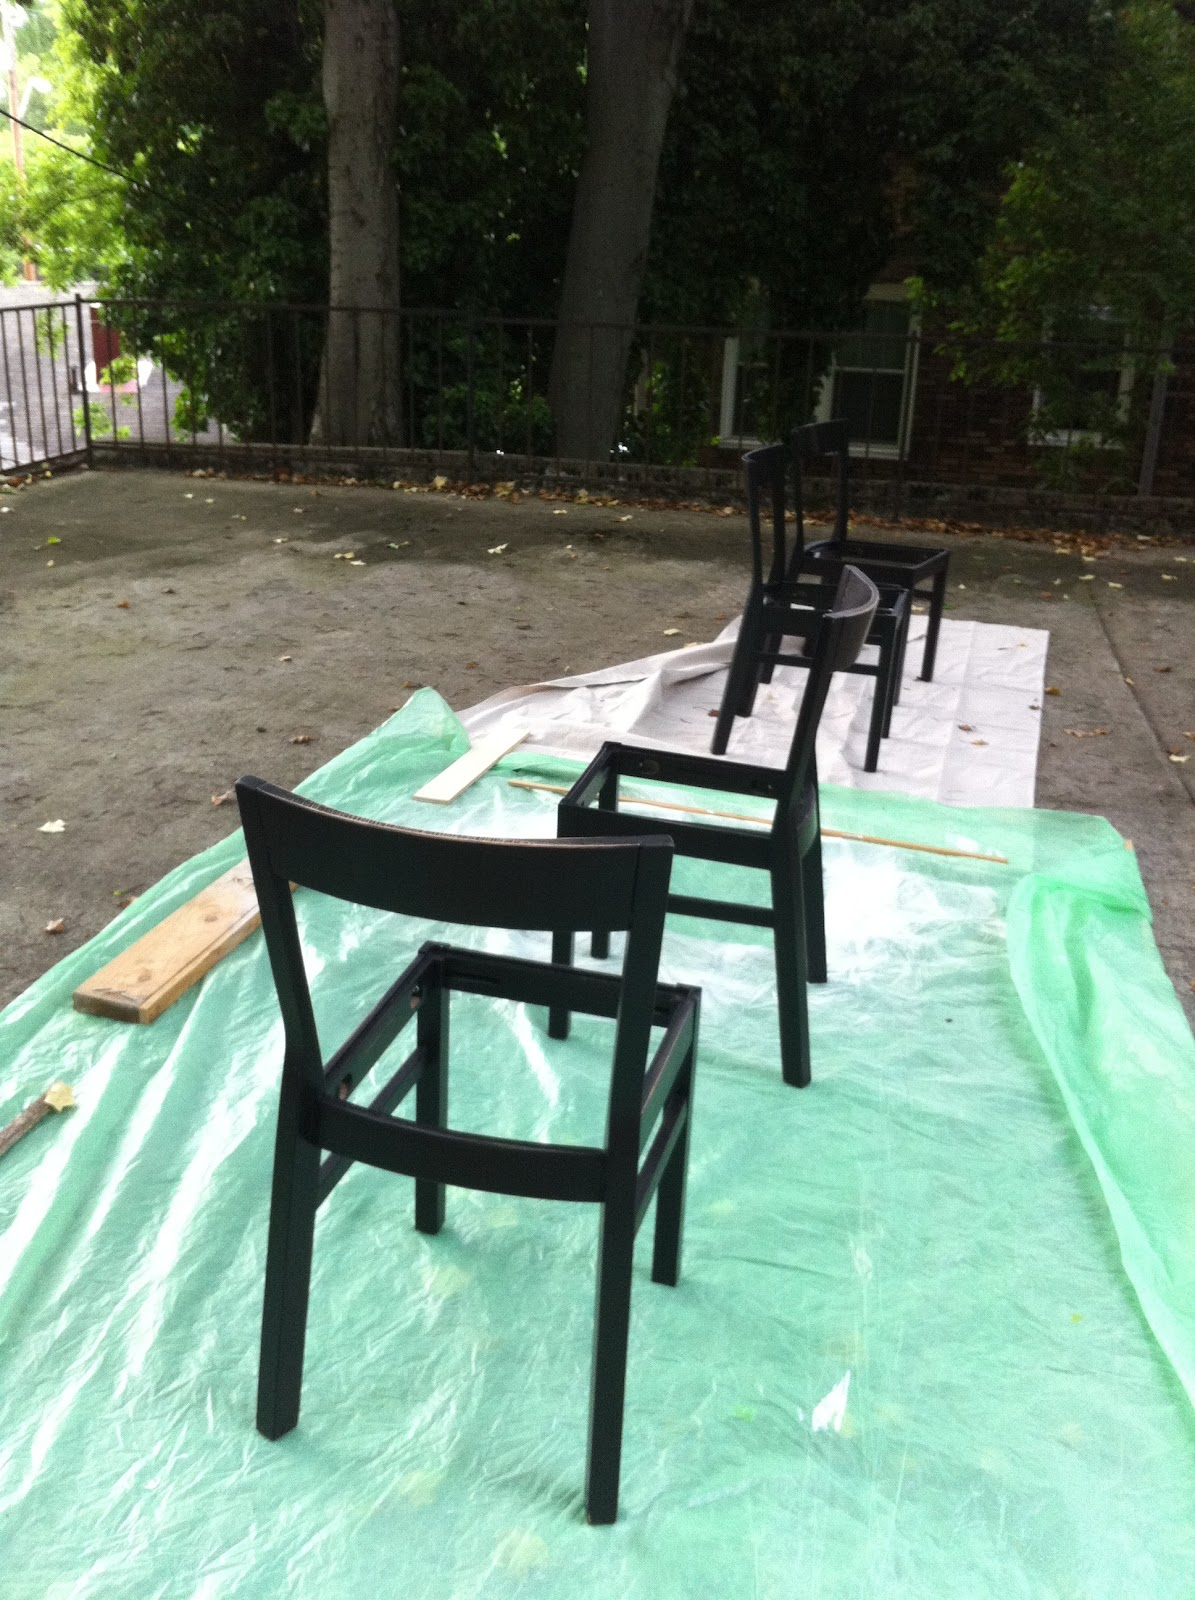 Ikea Roger Chairs - Before Painting & dwell and tell: Dining Room Chairs Repainted! Weekend Project